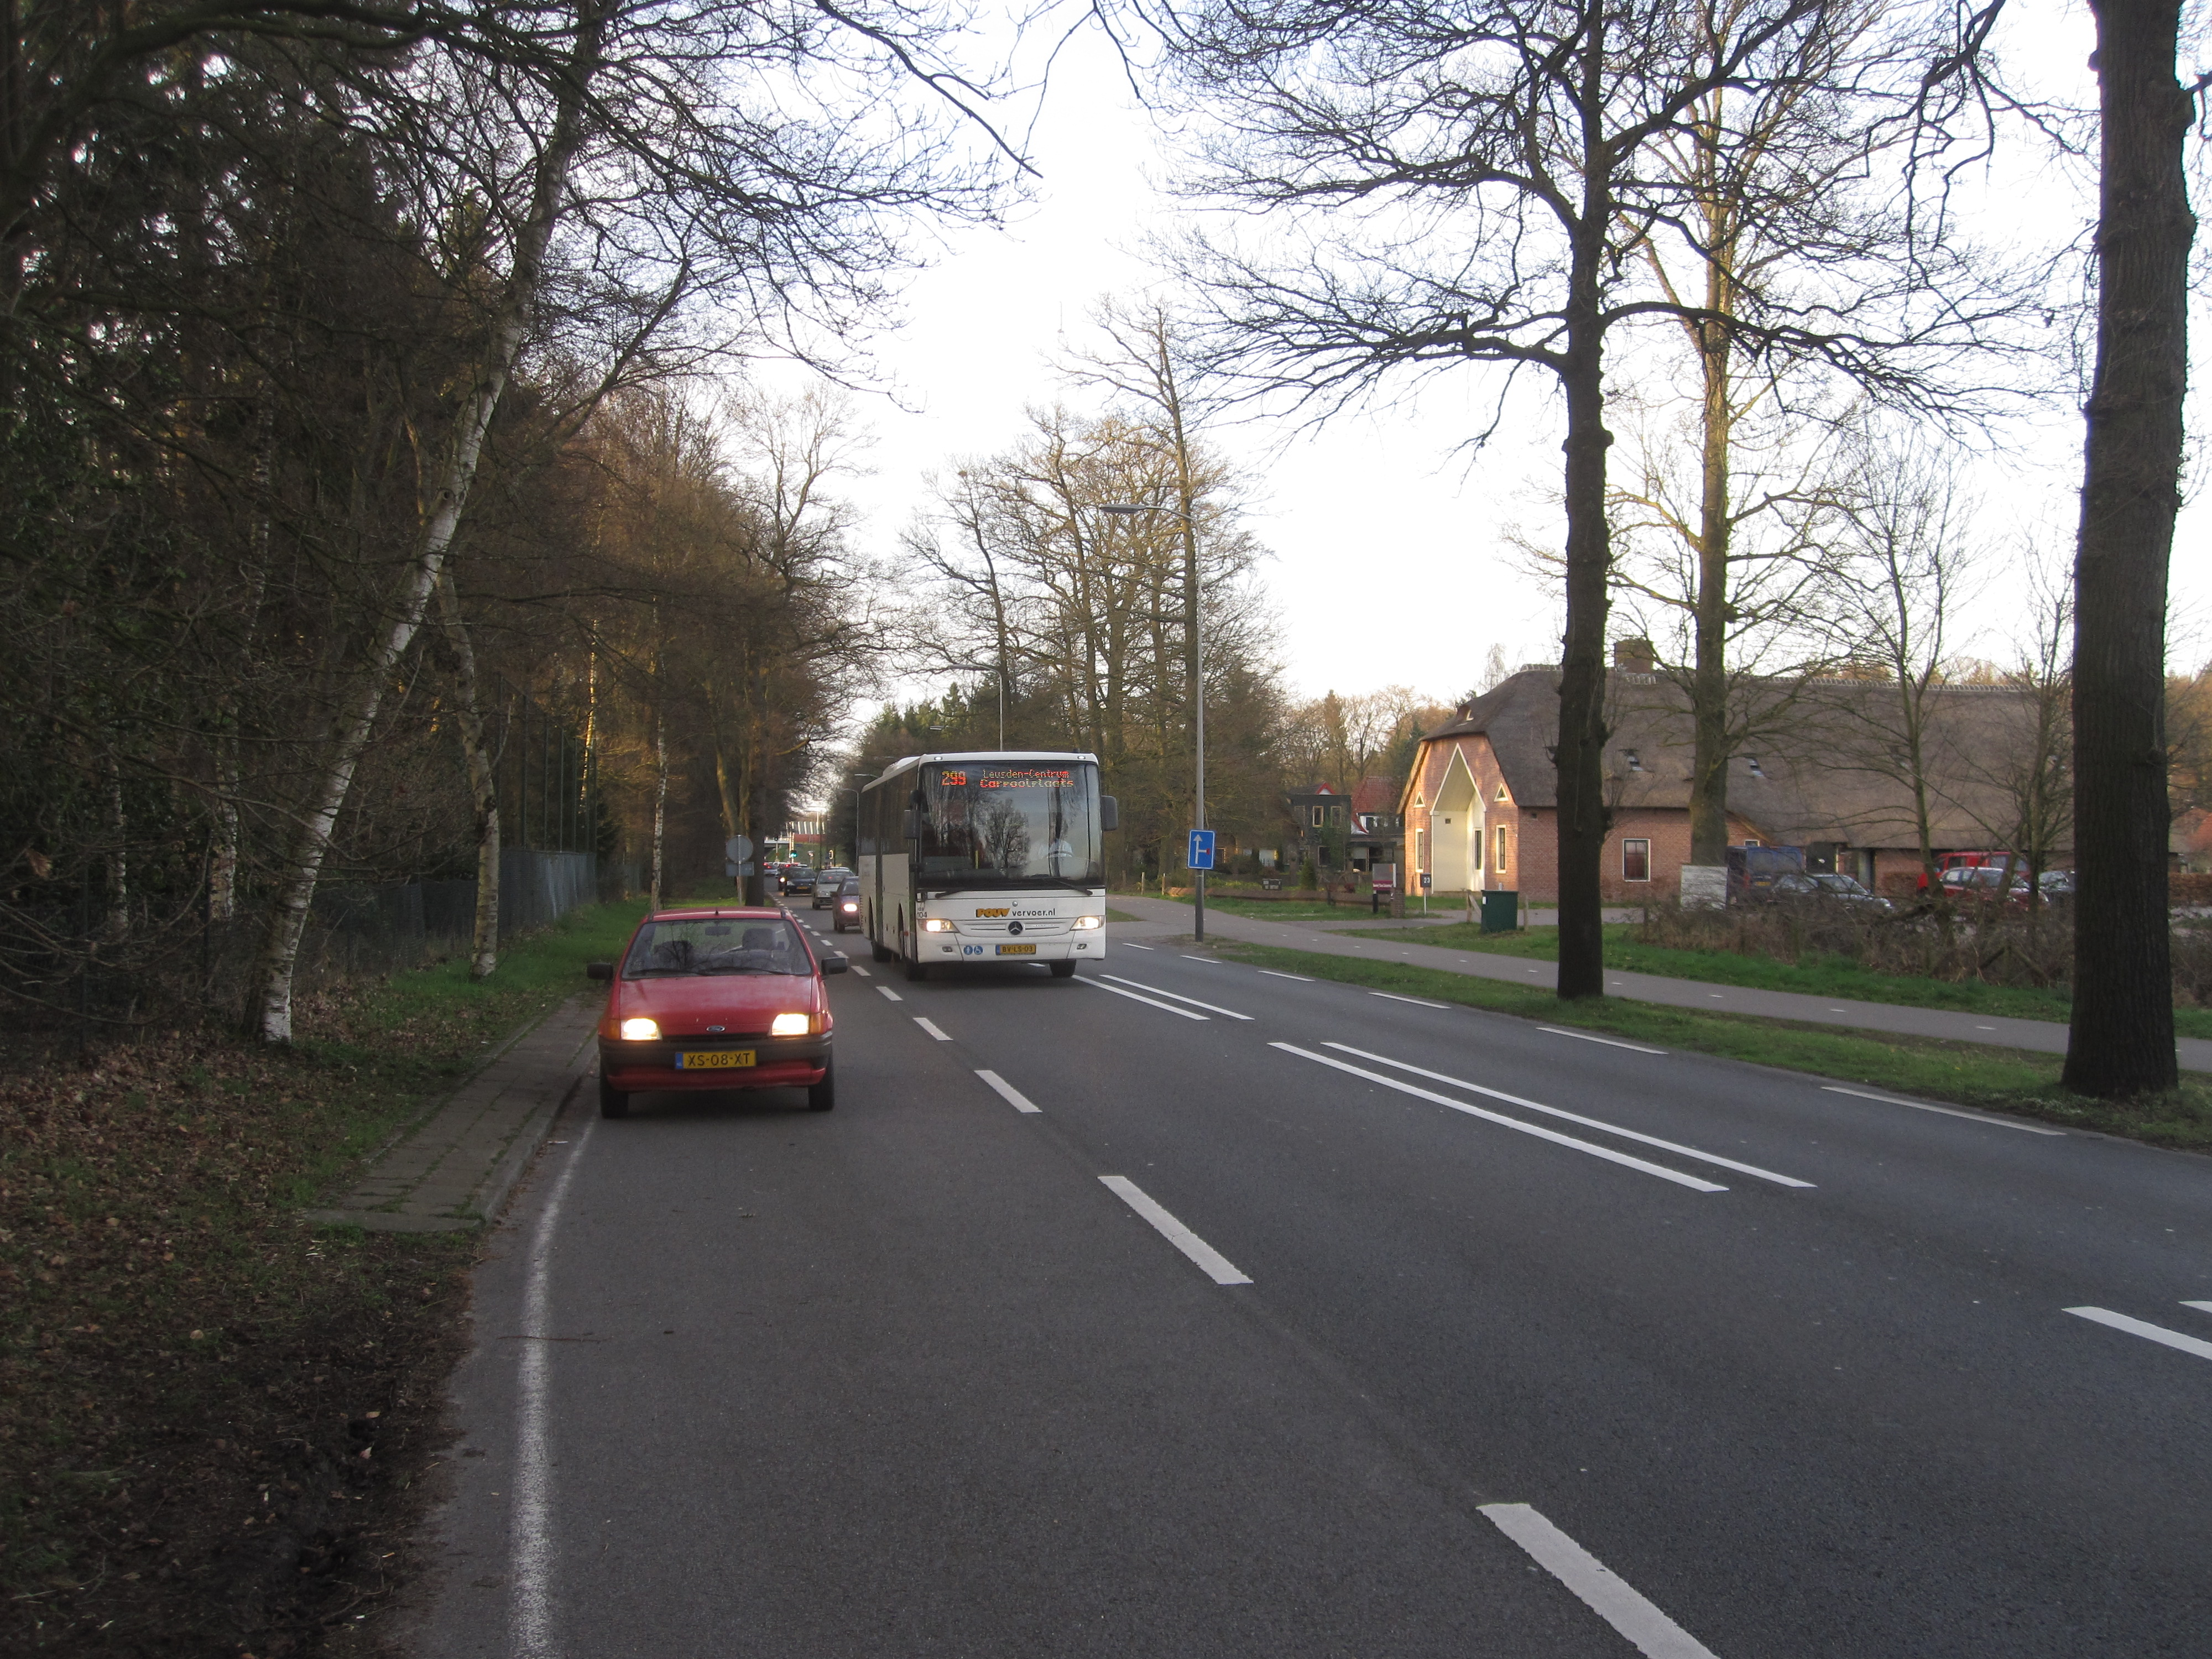 The Schutterhoeflaan bus stop, together with a 299 express bus, which never stopped here.